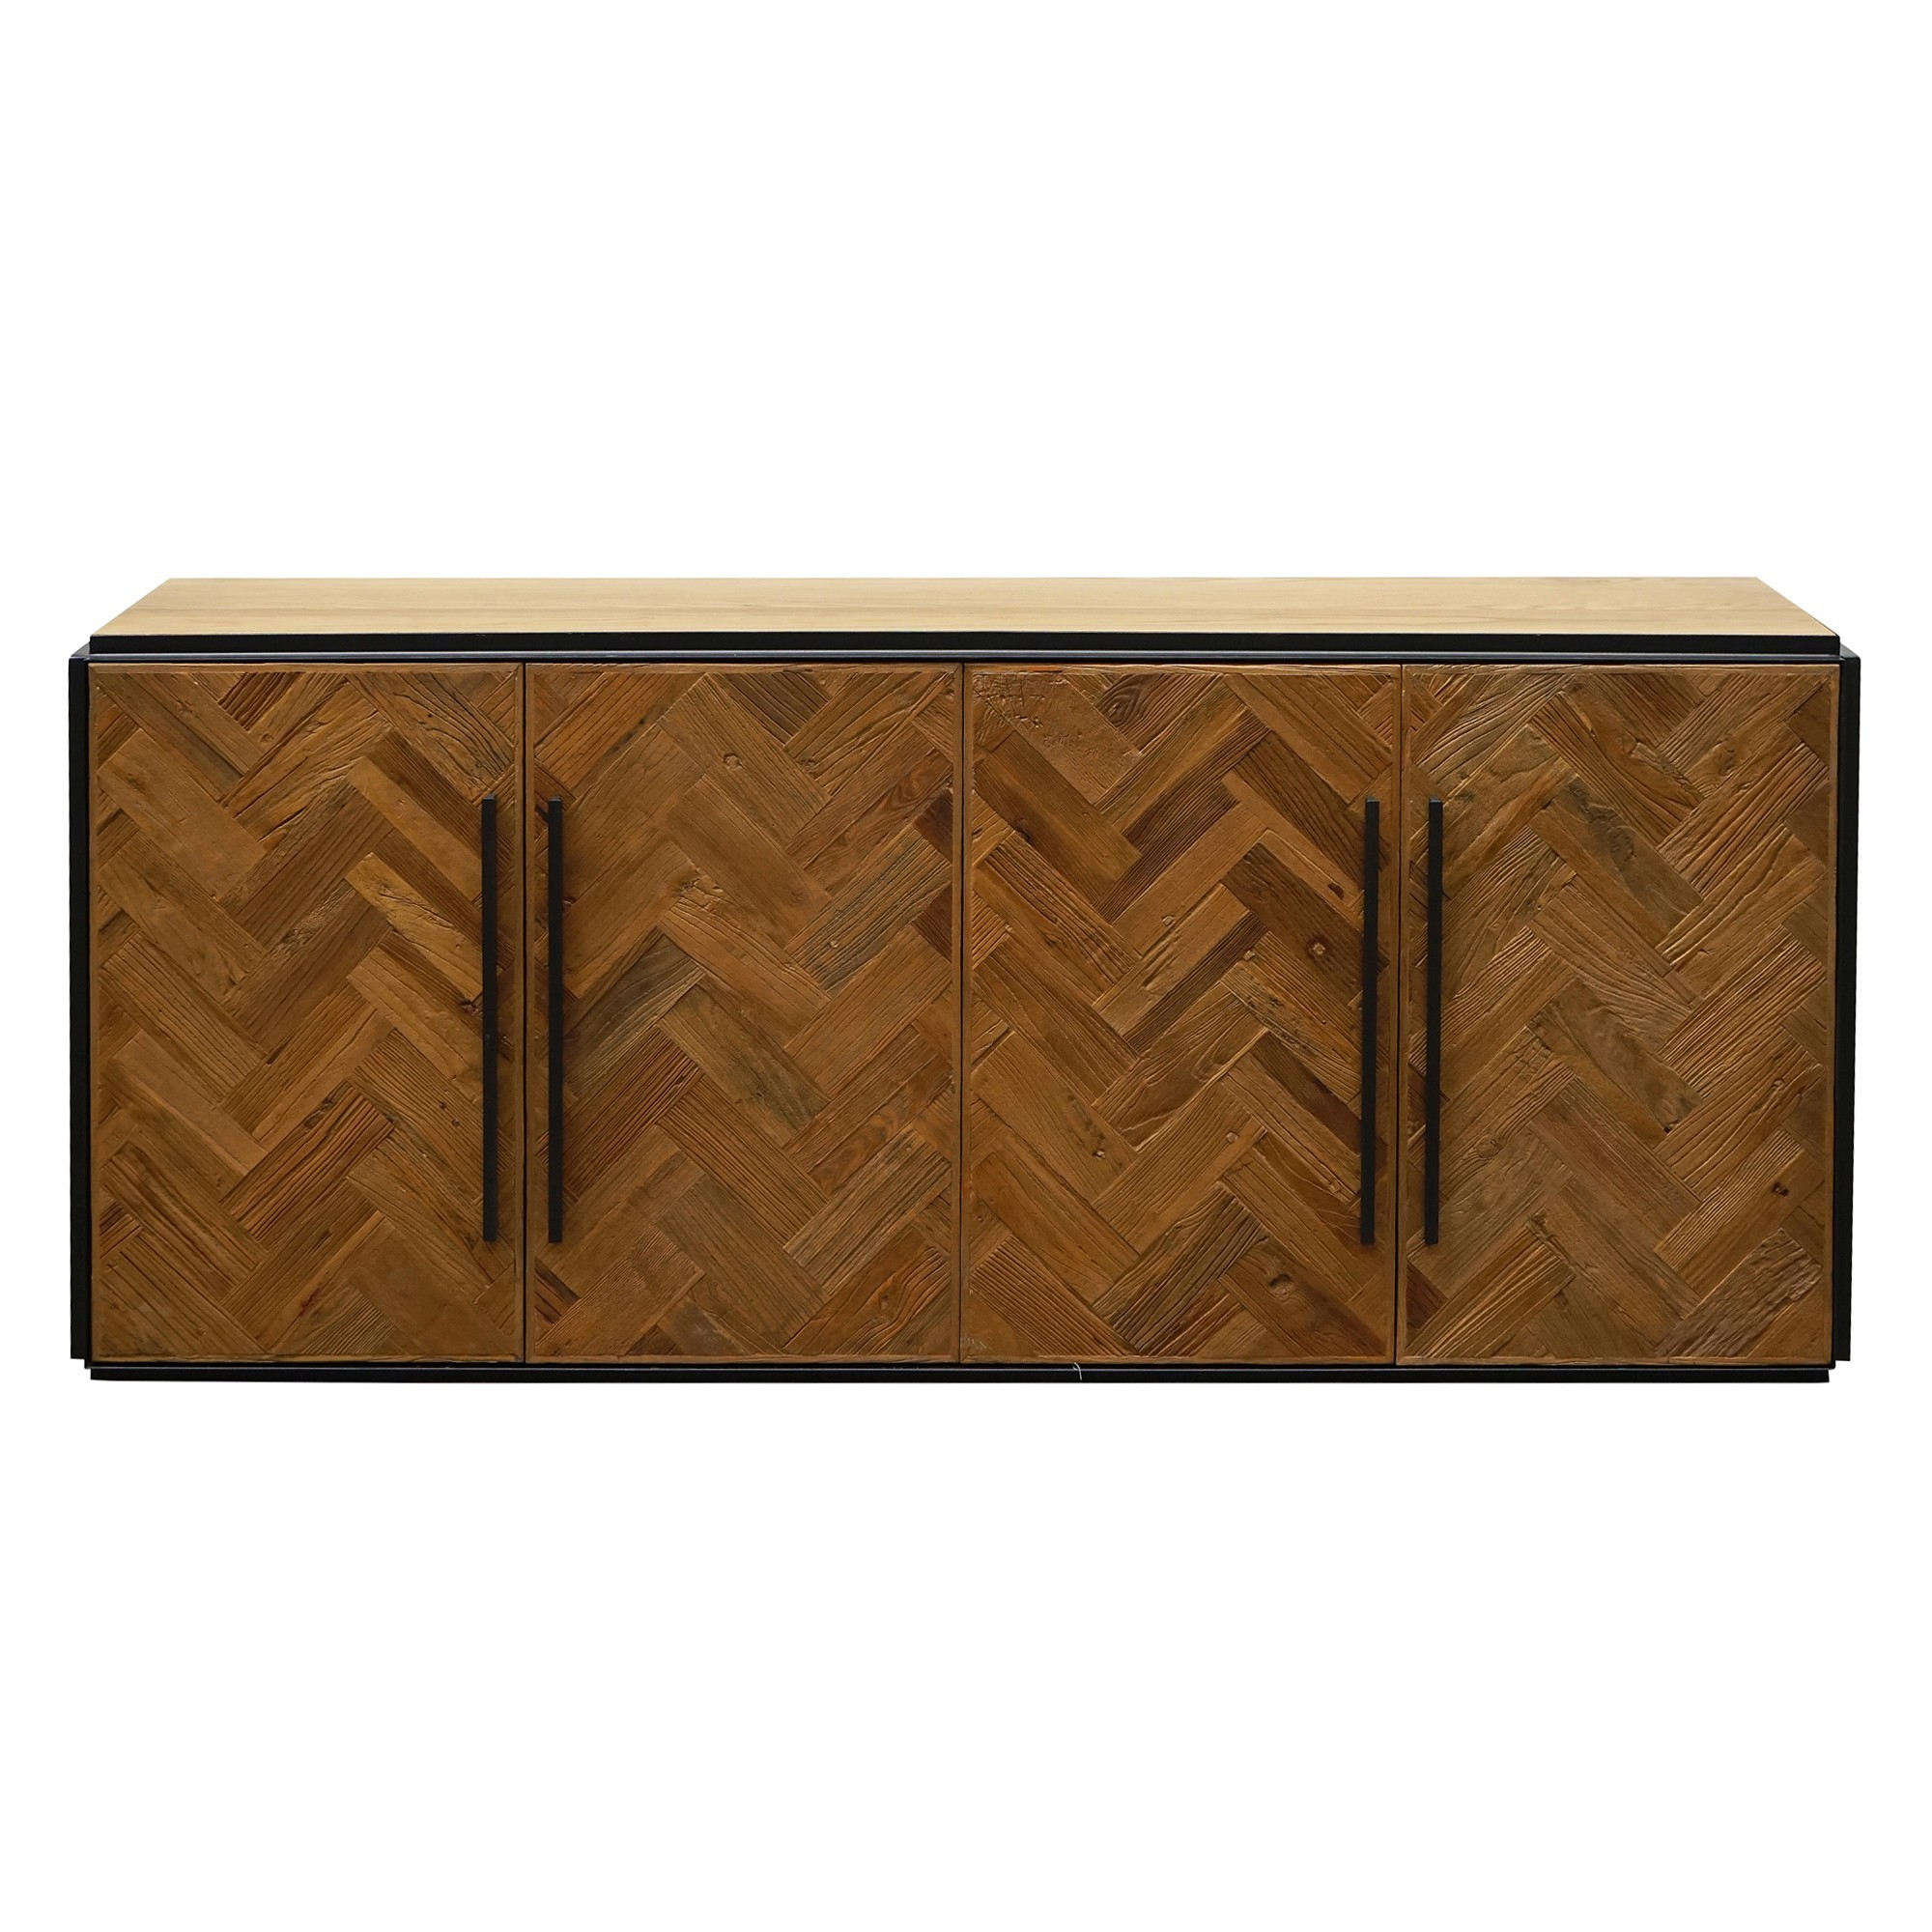 Jayco Reclaimed Elm Timber 4 Door Sideboard, 200cm